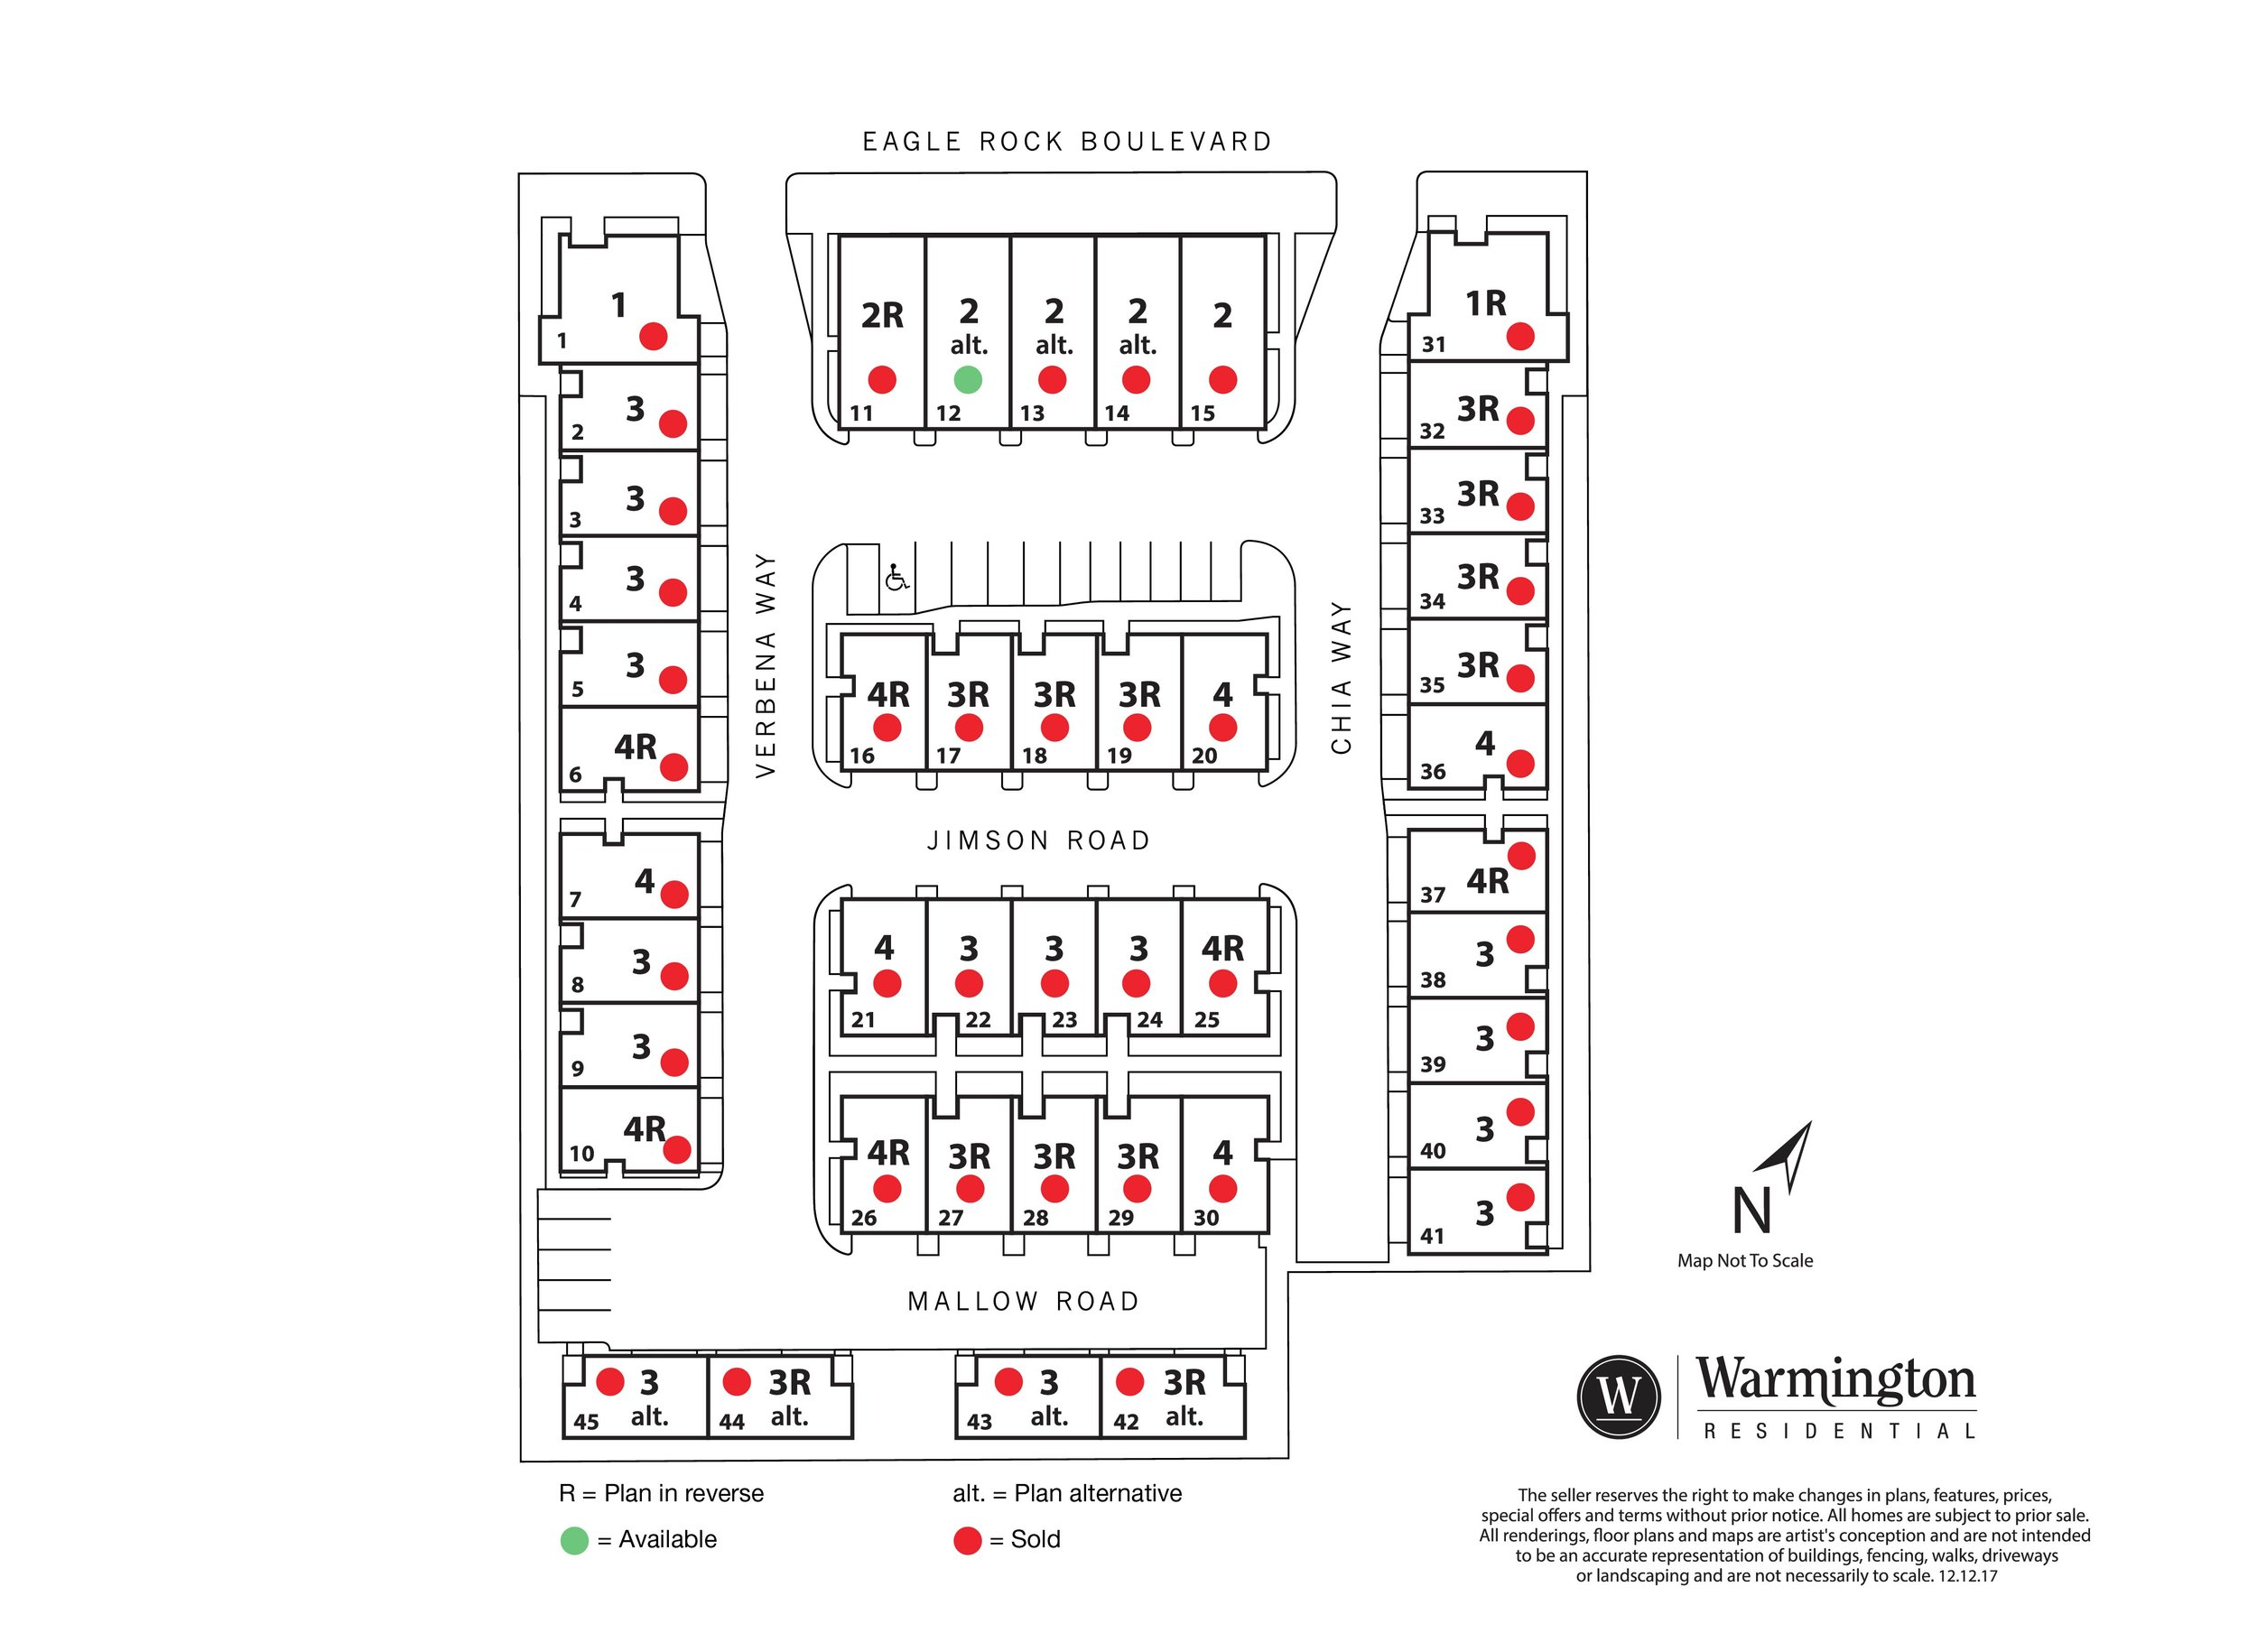 erb_site_plan_available_homes_090919.jpg